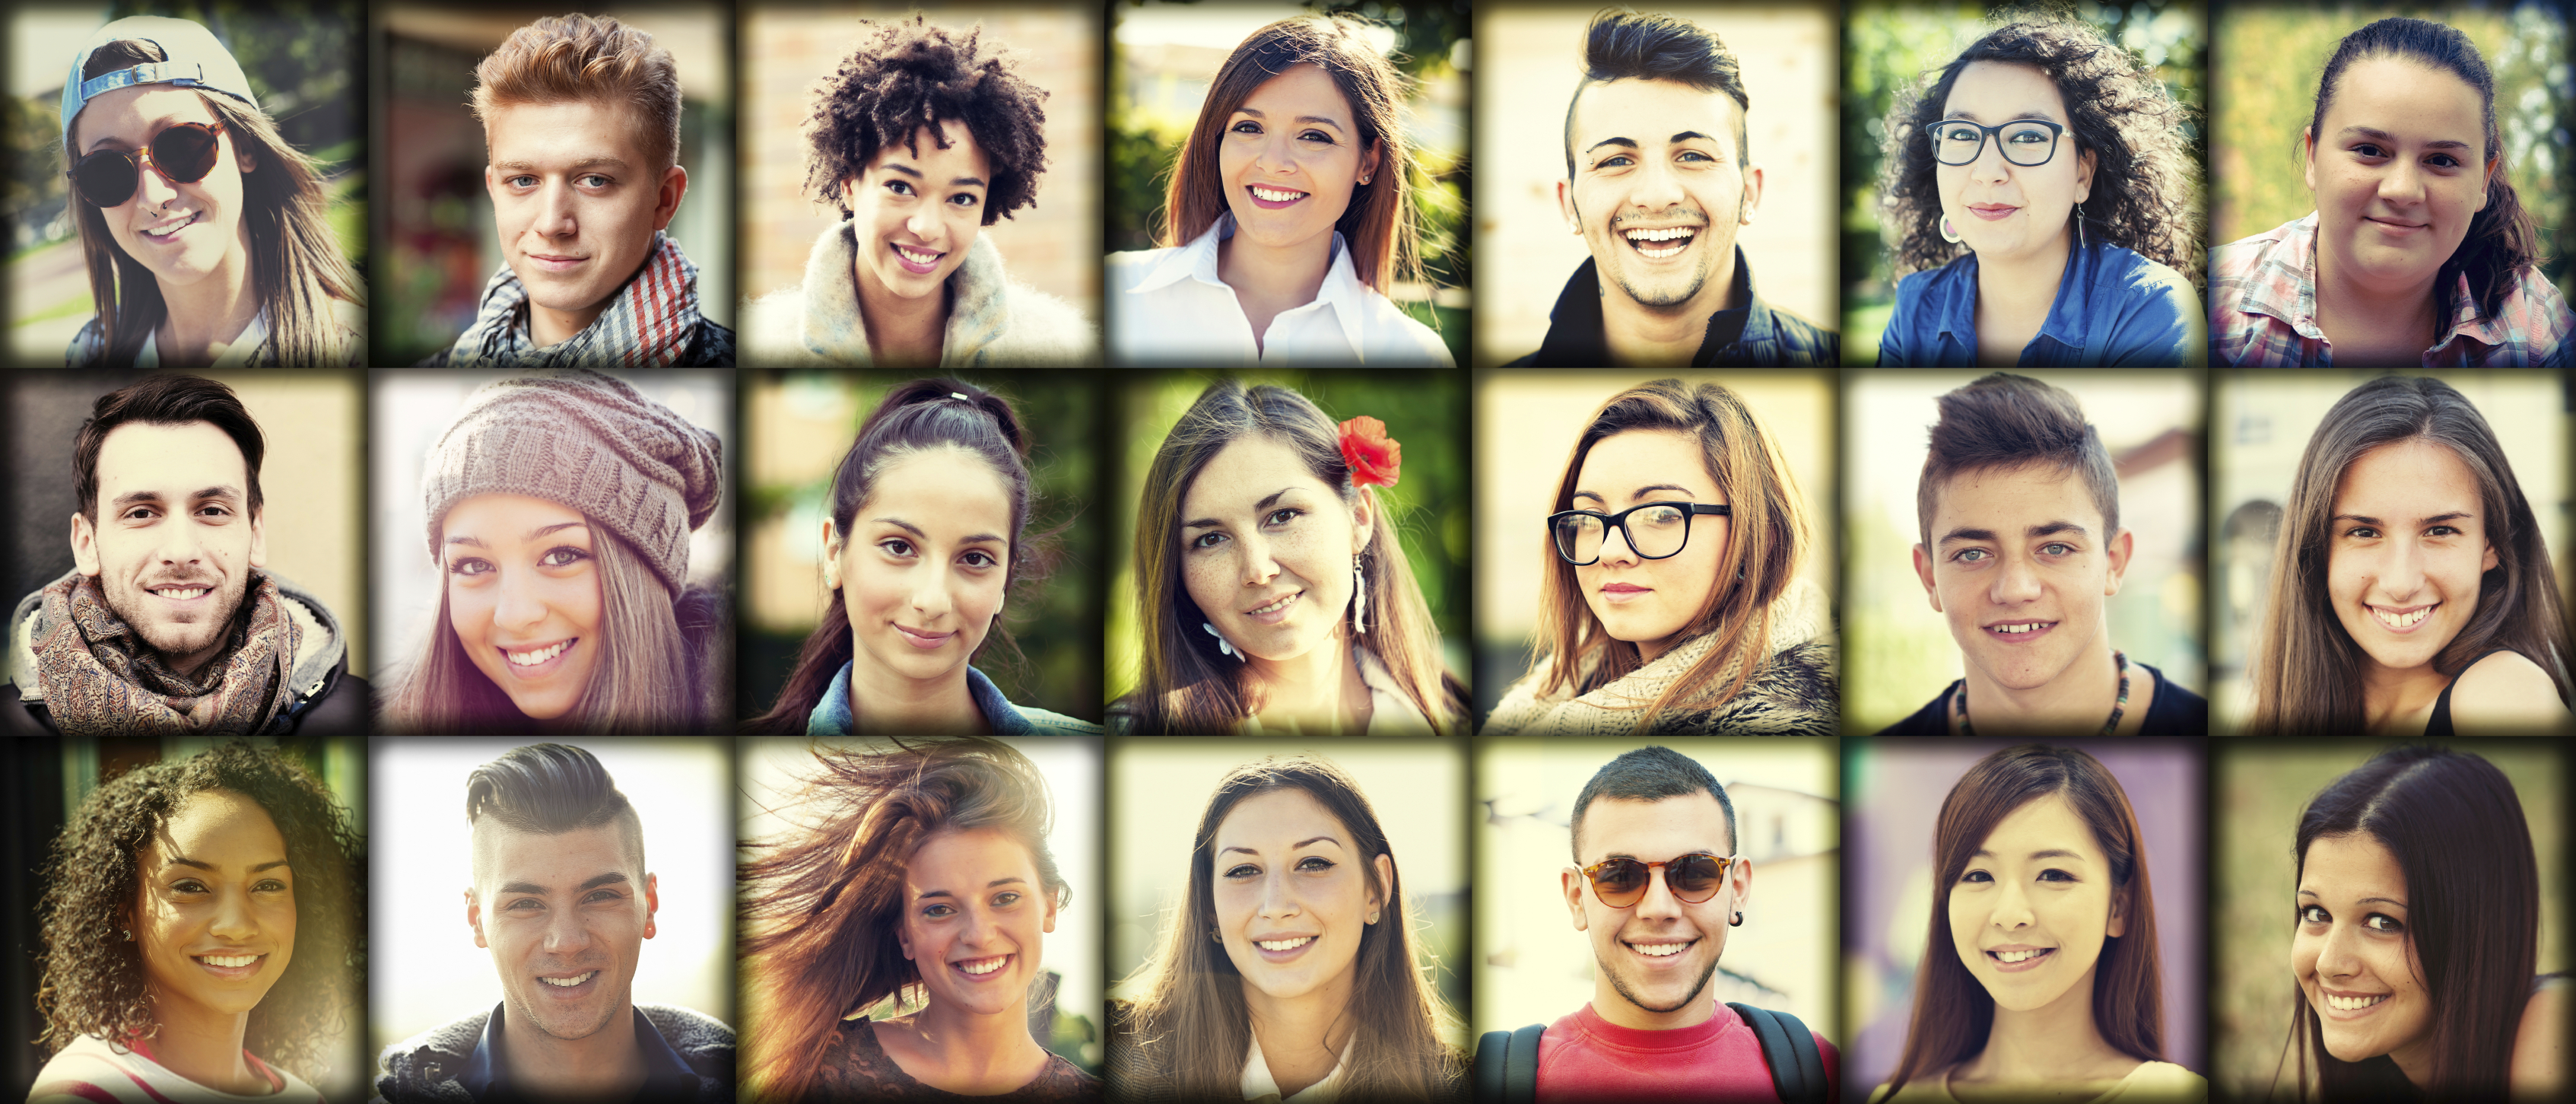 people_collage